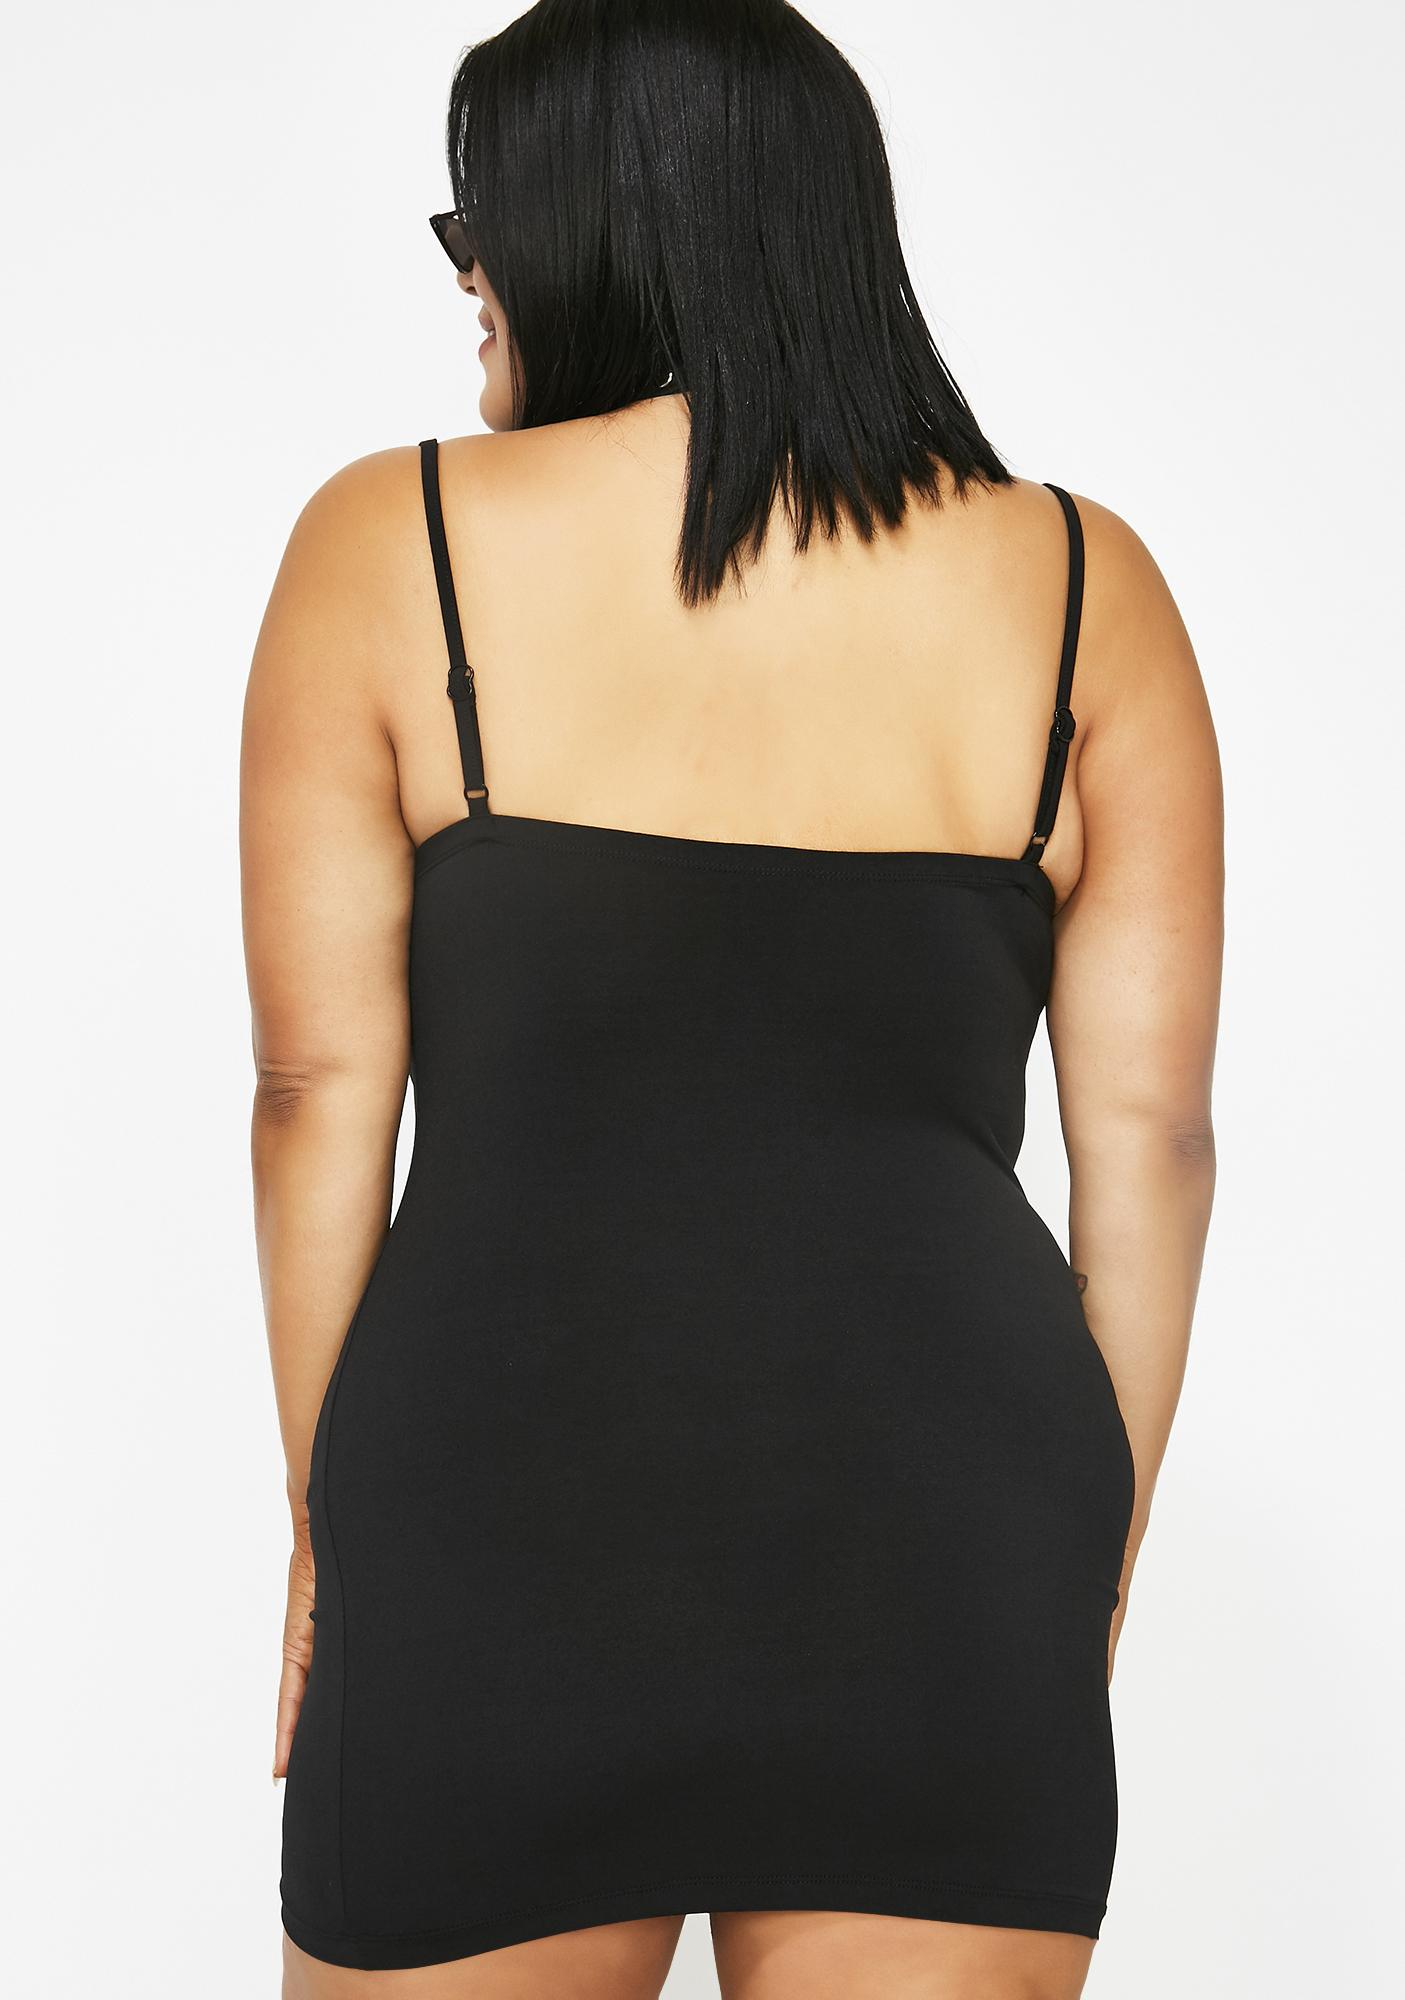 Kiki Riki Just Give Up Bodycon Dress